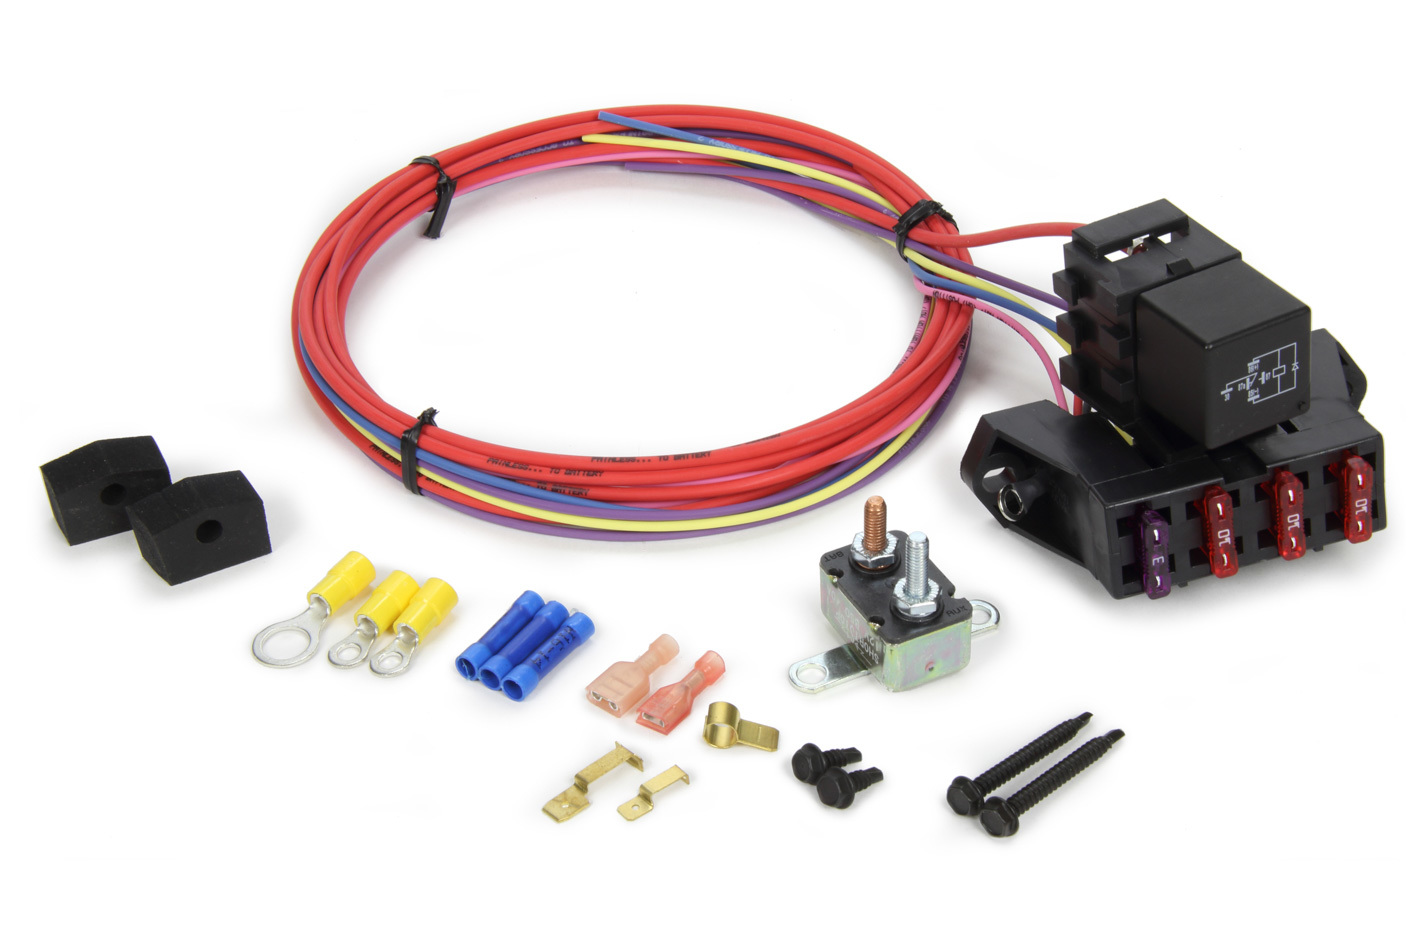 Painless Wiring 70113 Fuse Block, Auxiliary, 3 Circuit, Harness / Relay, Universal, Each